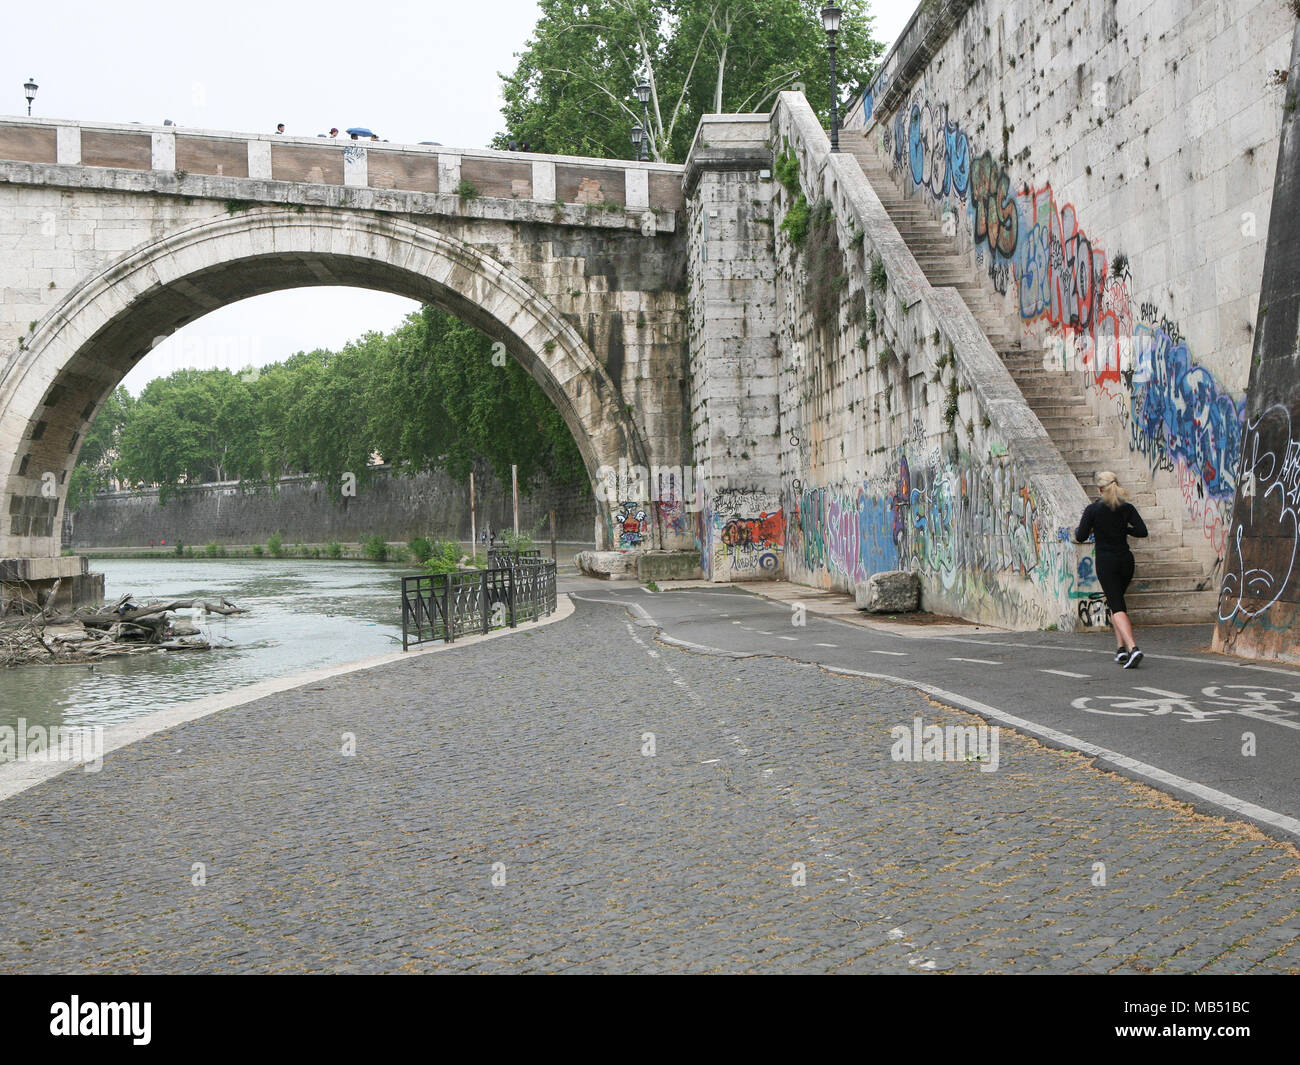 Woman running on the bike lane below the river Tiber at Ponte Sisto Bridge, Rome, Italy - Stock Image